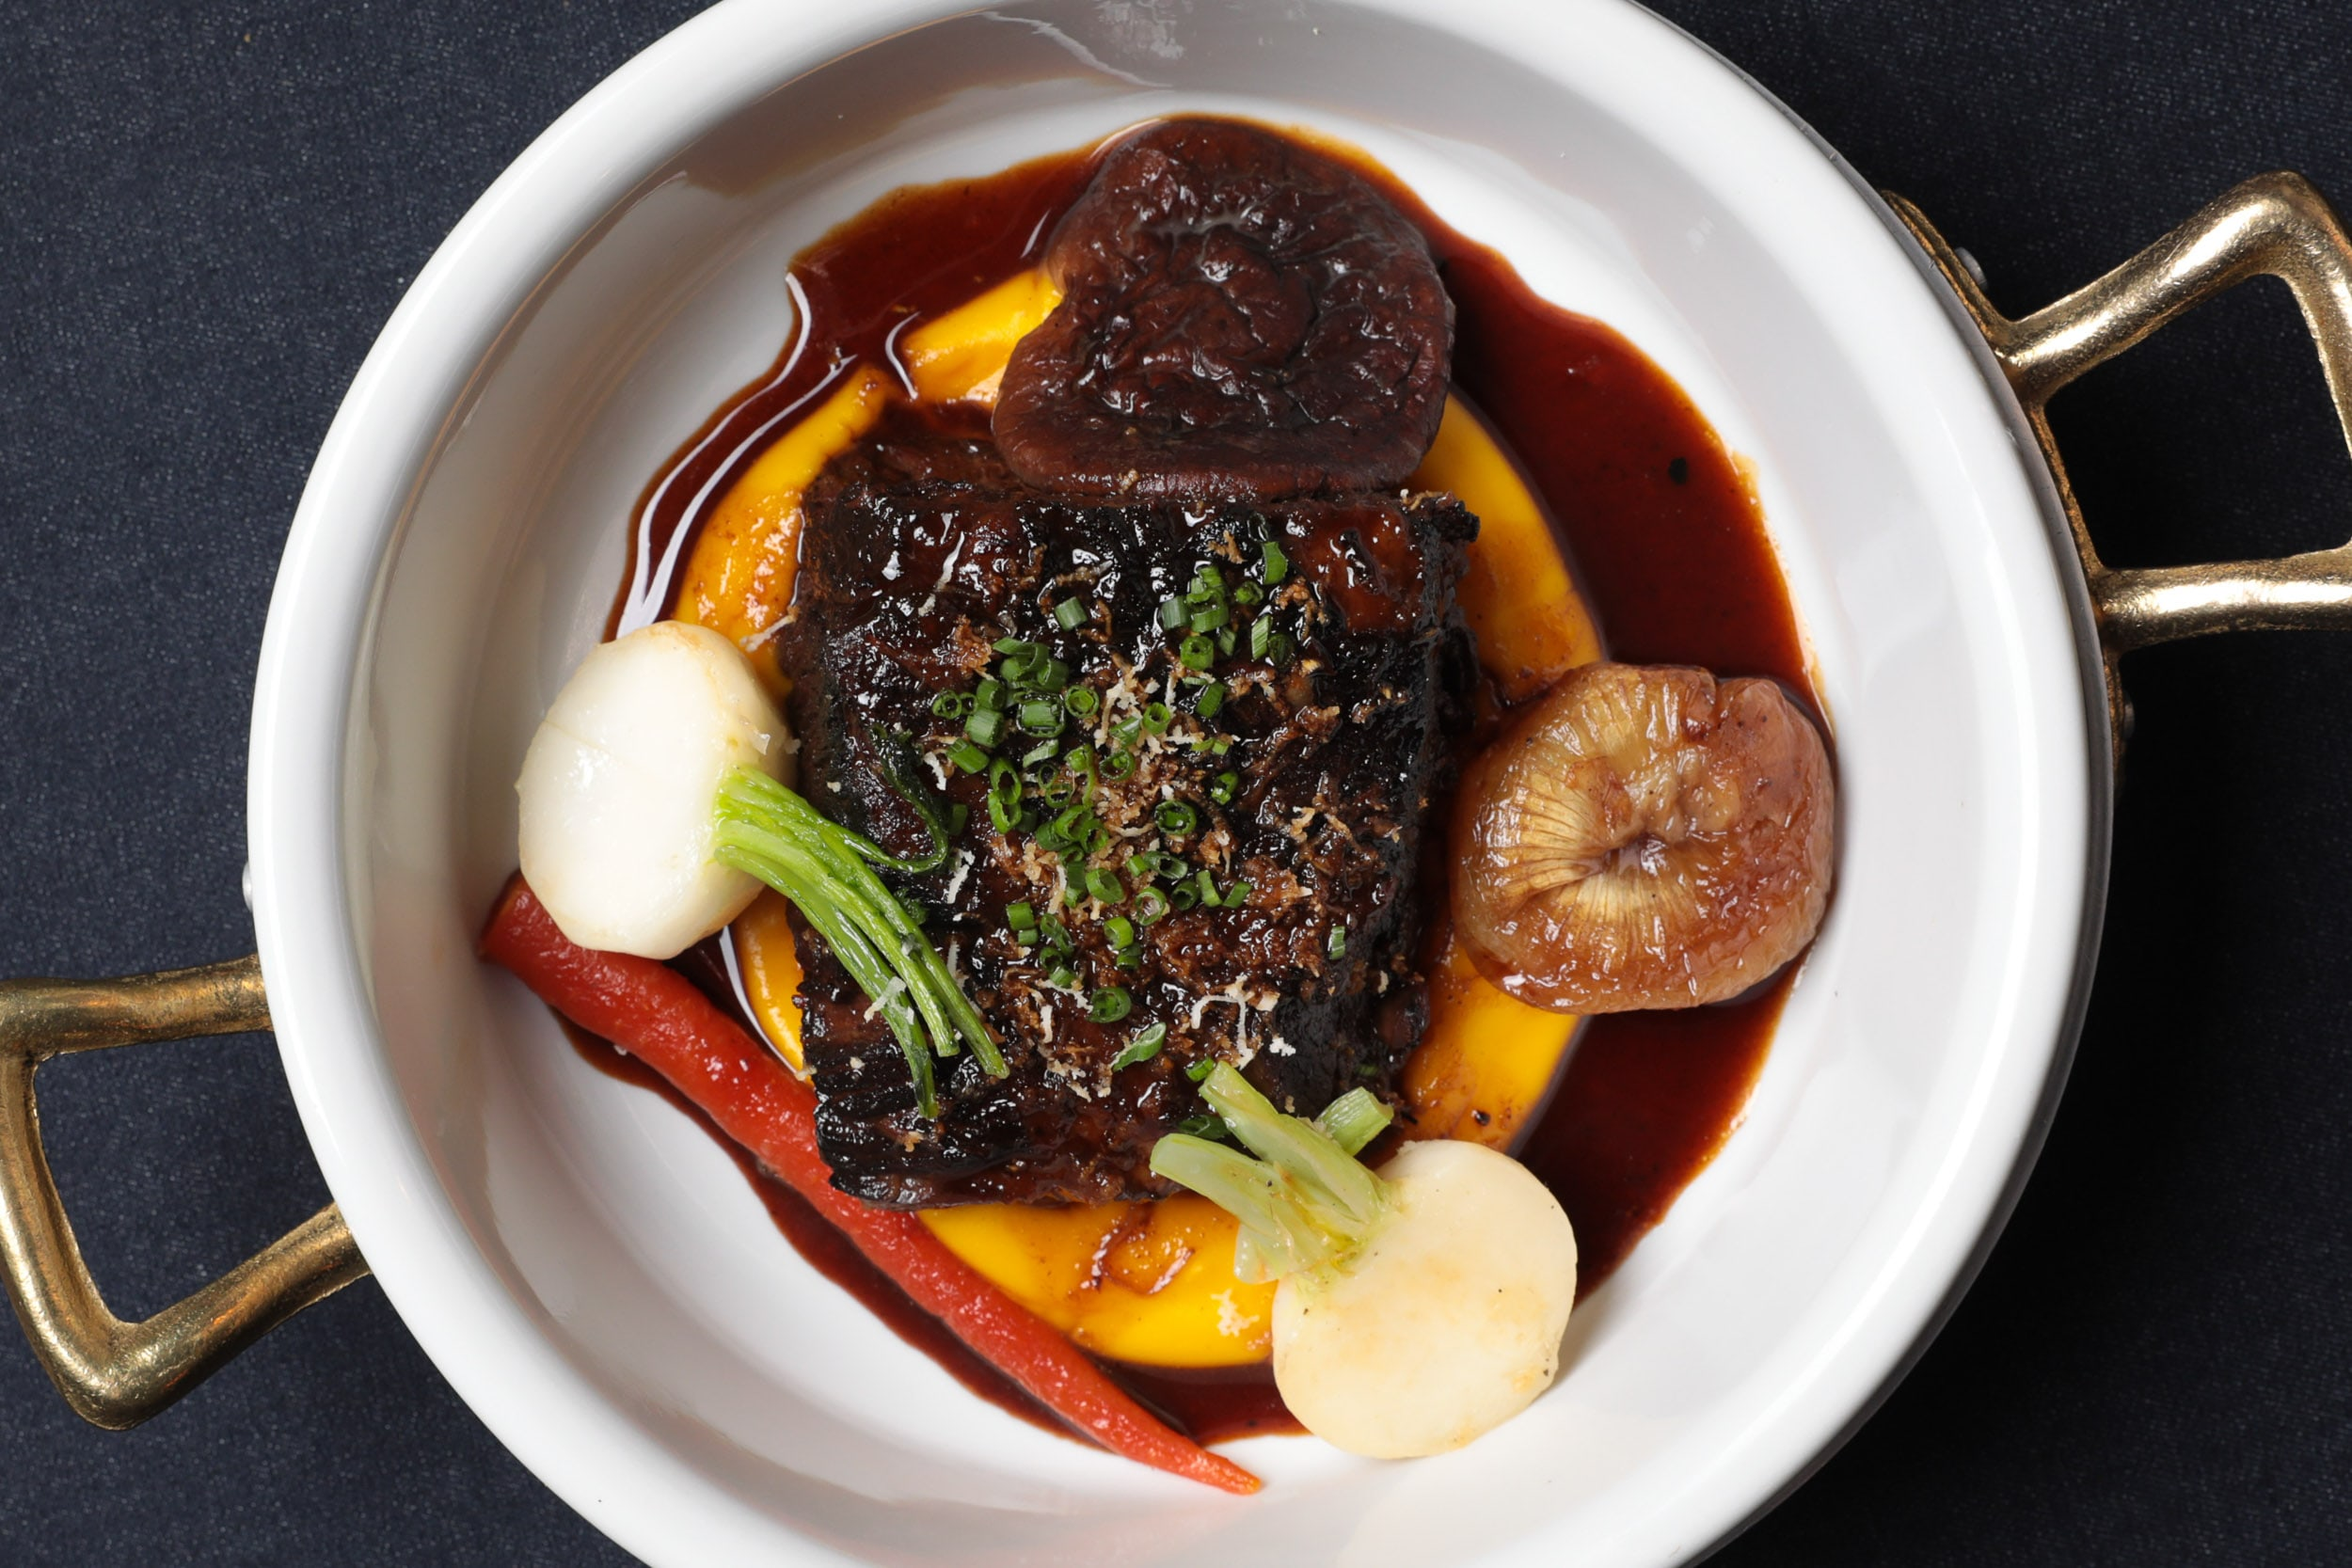 39032Ivy_Lane_Food_Beef_Short_Rib_2.jpg